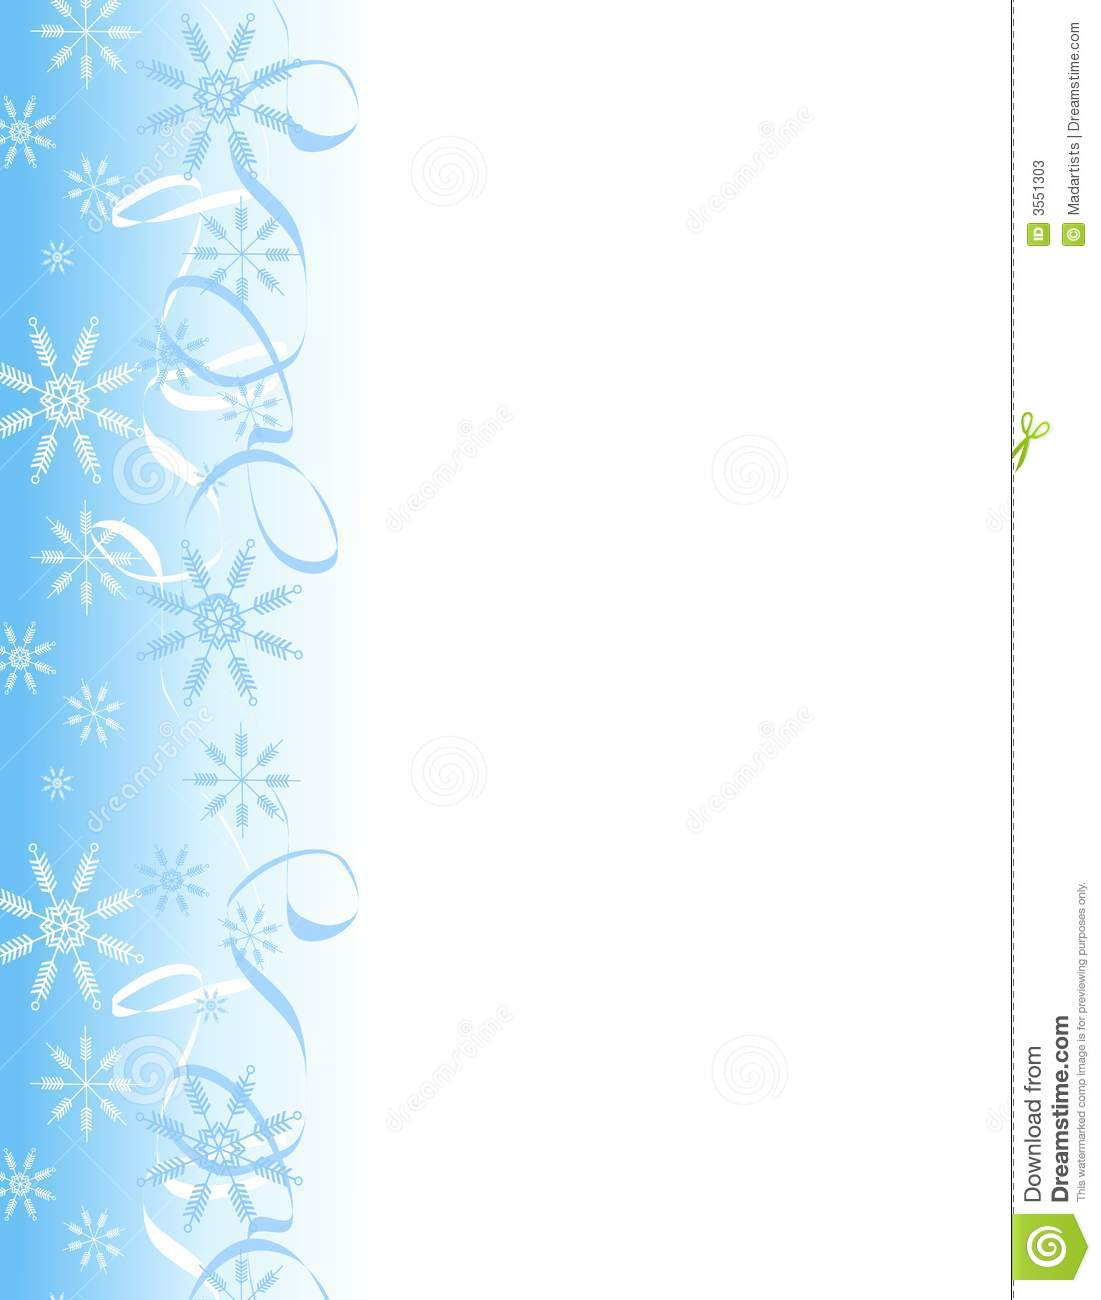 clip art illustration of a decorative Christmas page border with ...